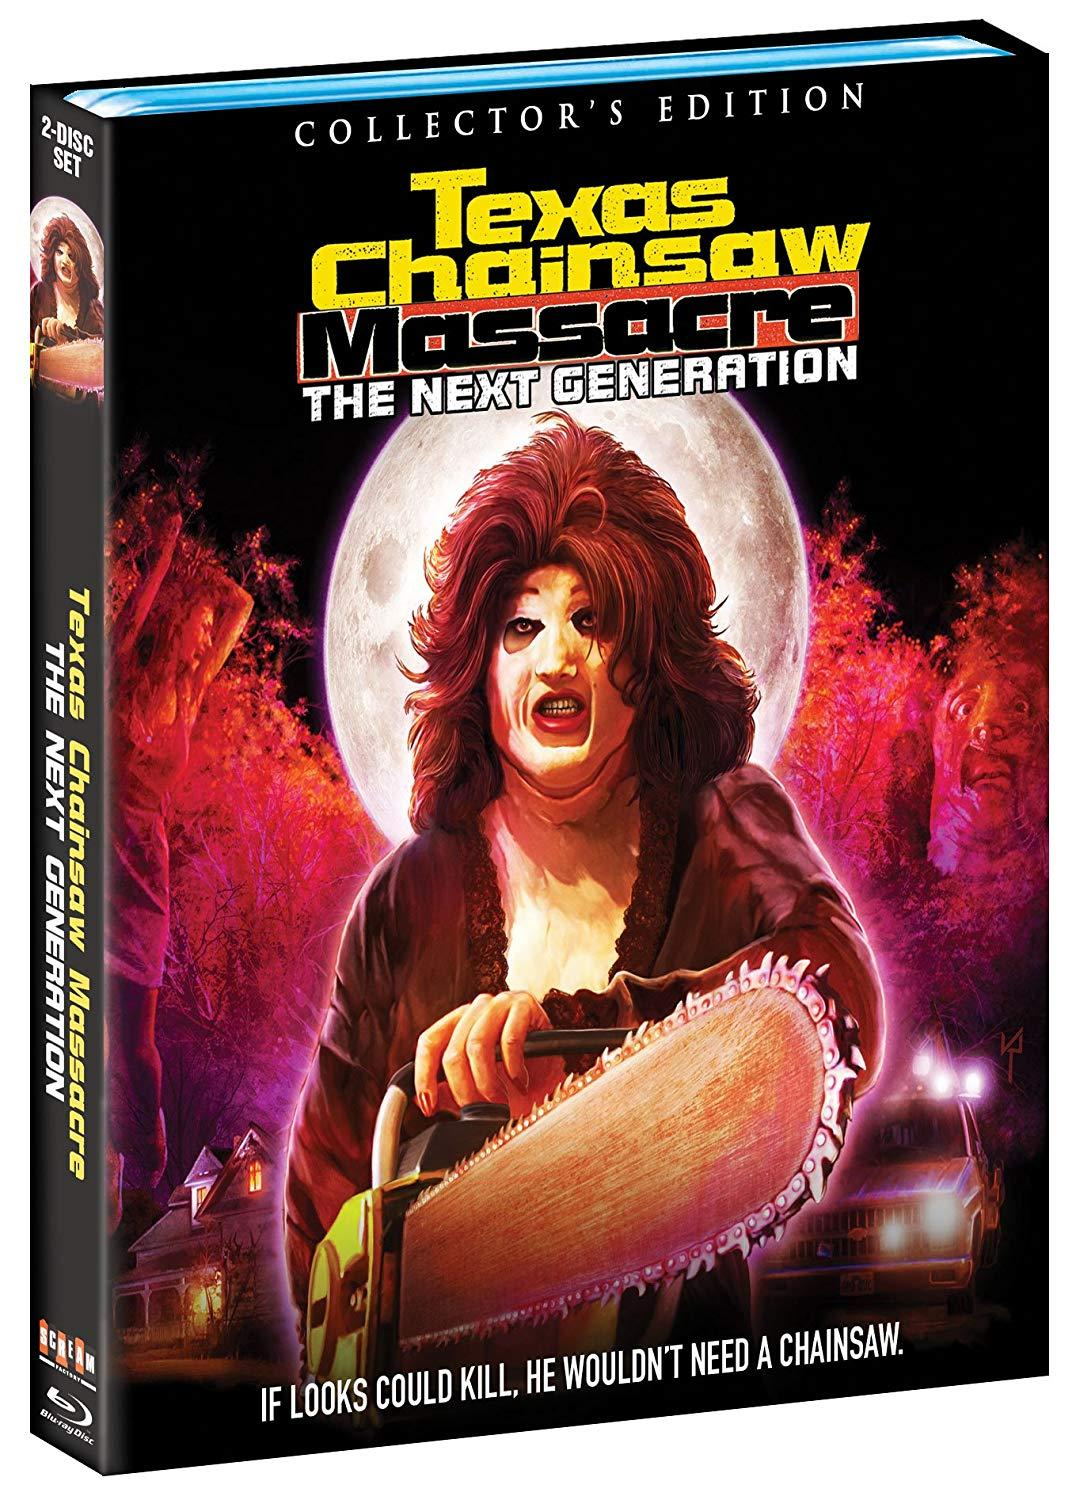 Contest: Win TEXAS CHAINSAW MASSACRE: THE NEXT GENERATION